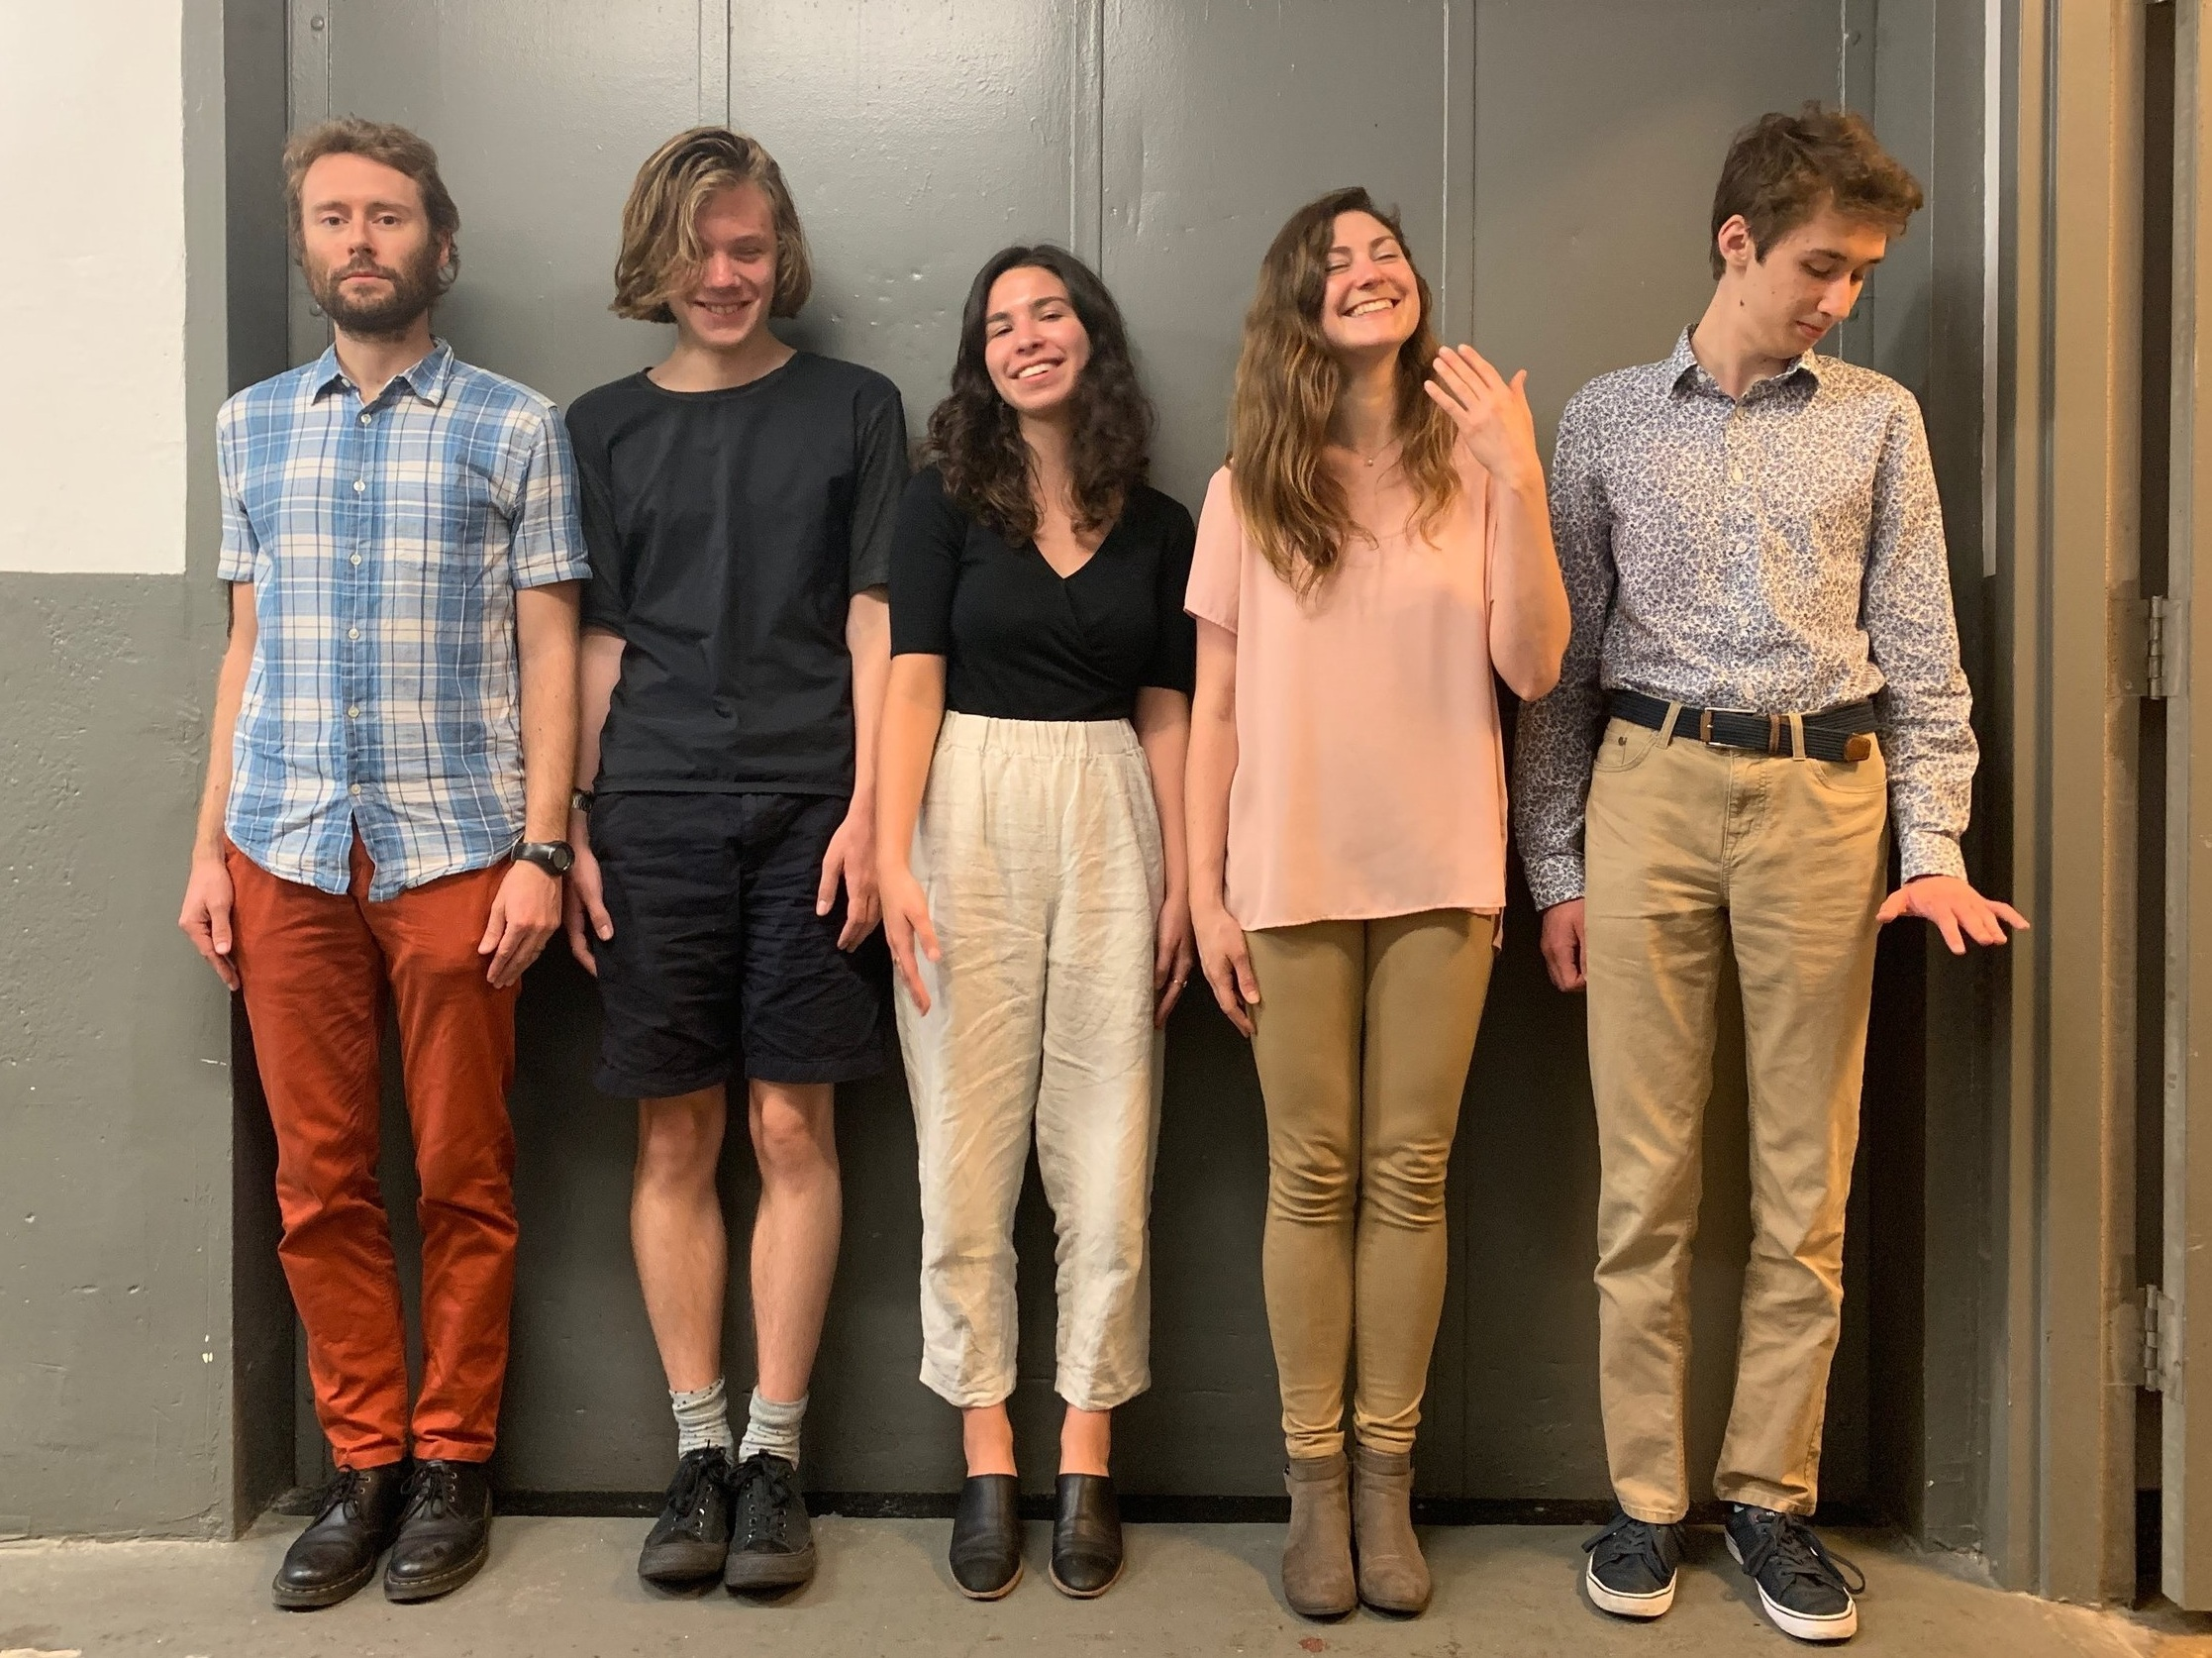 From left to right: Oliver Wright, Theo Brandt, Casey Breen, DeNeile Cooper, and Alex Serbanescu.